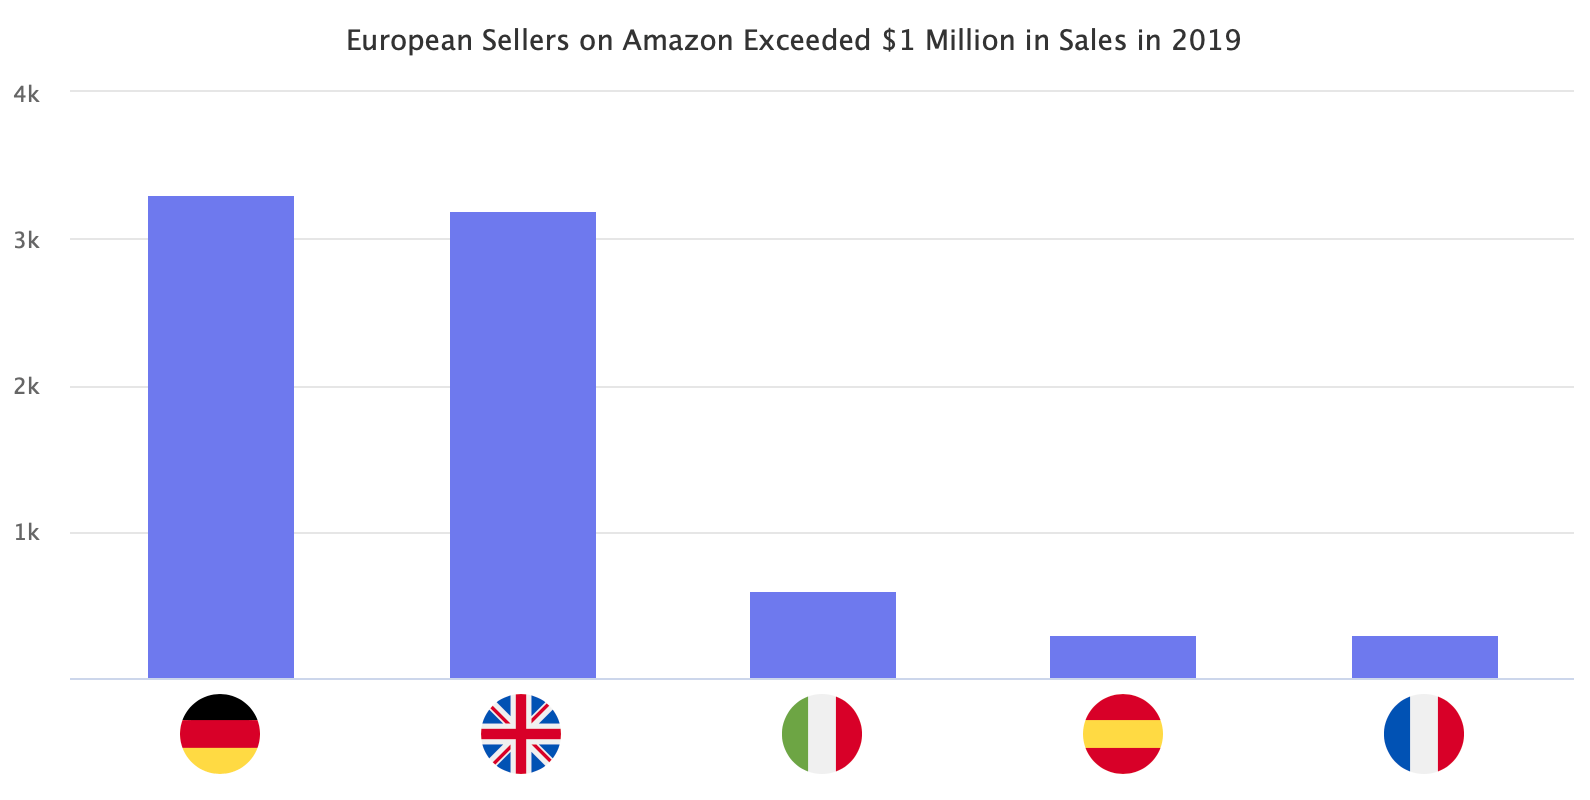 European Sellers on Amazon Exceeded $1 Million in Sales in 2019